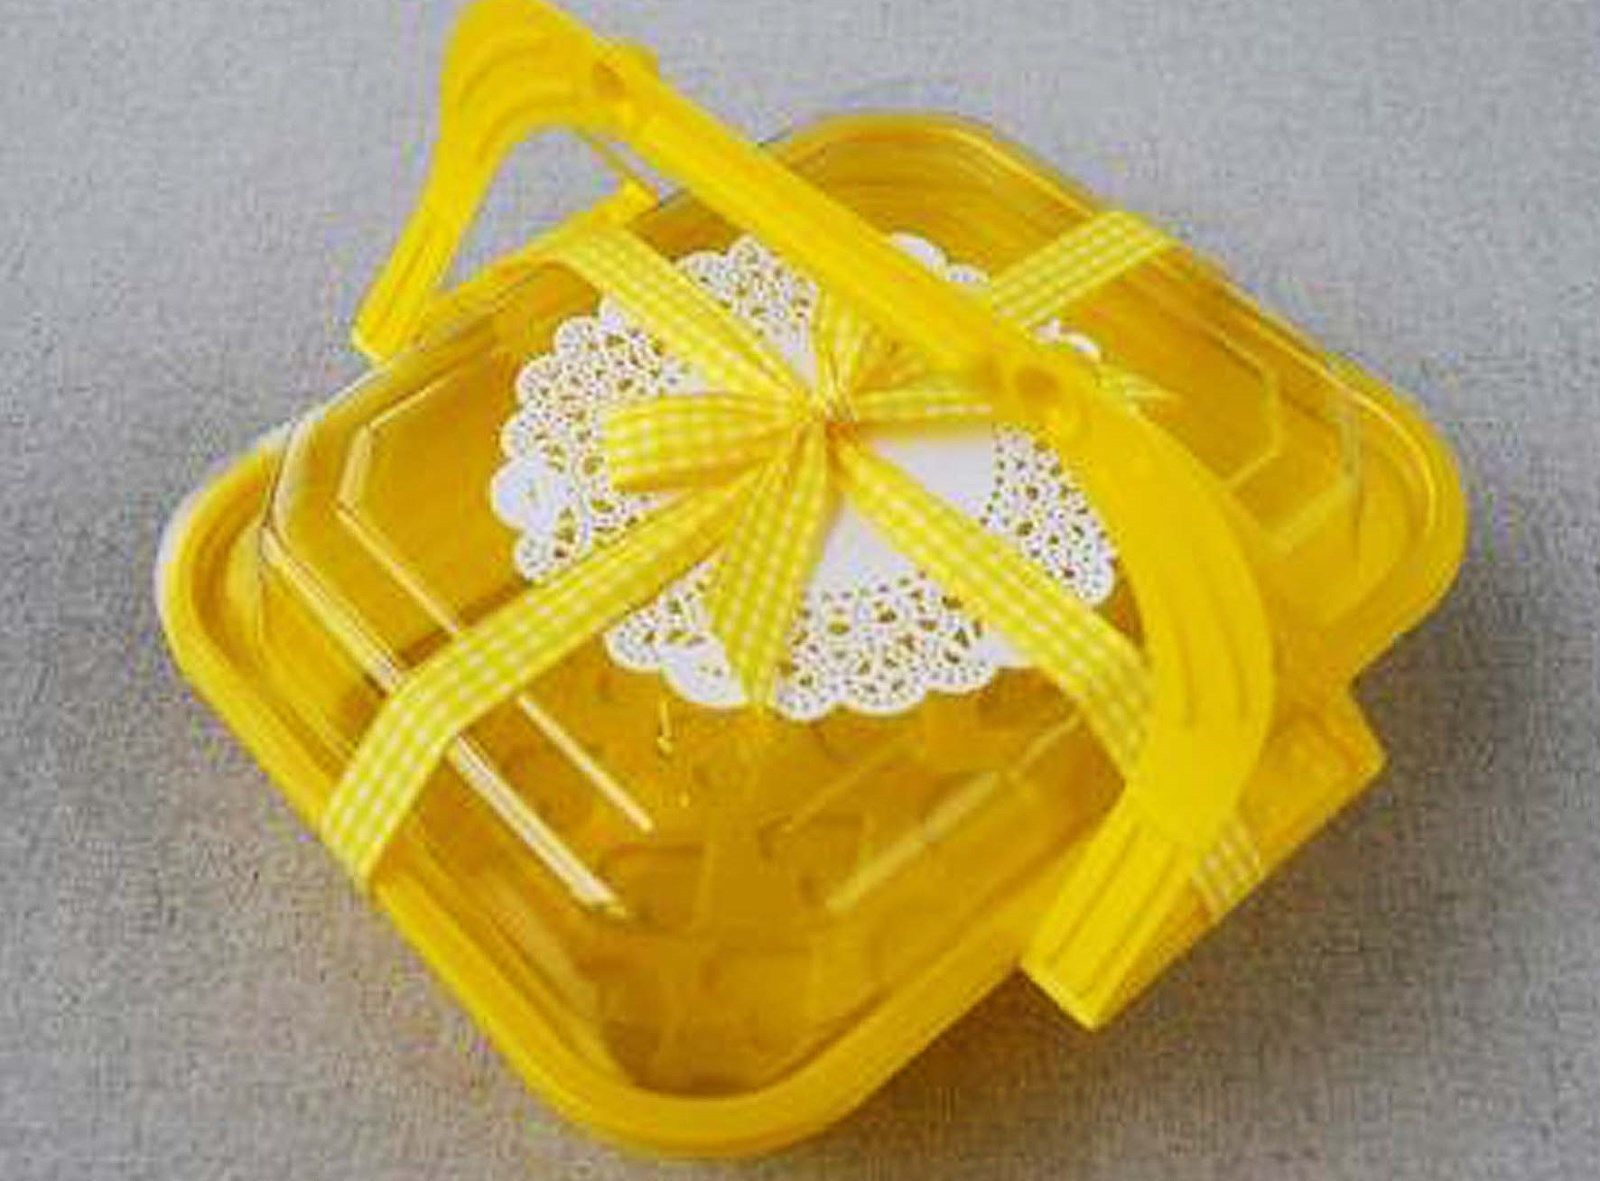 10Pcs Disposable Plastic Food Storage Bento Lunch Box Takeaway Container-Yello